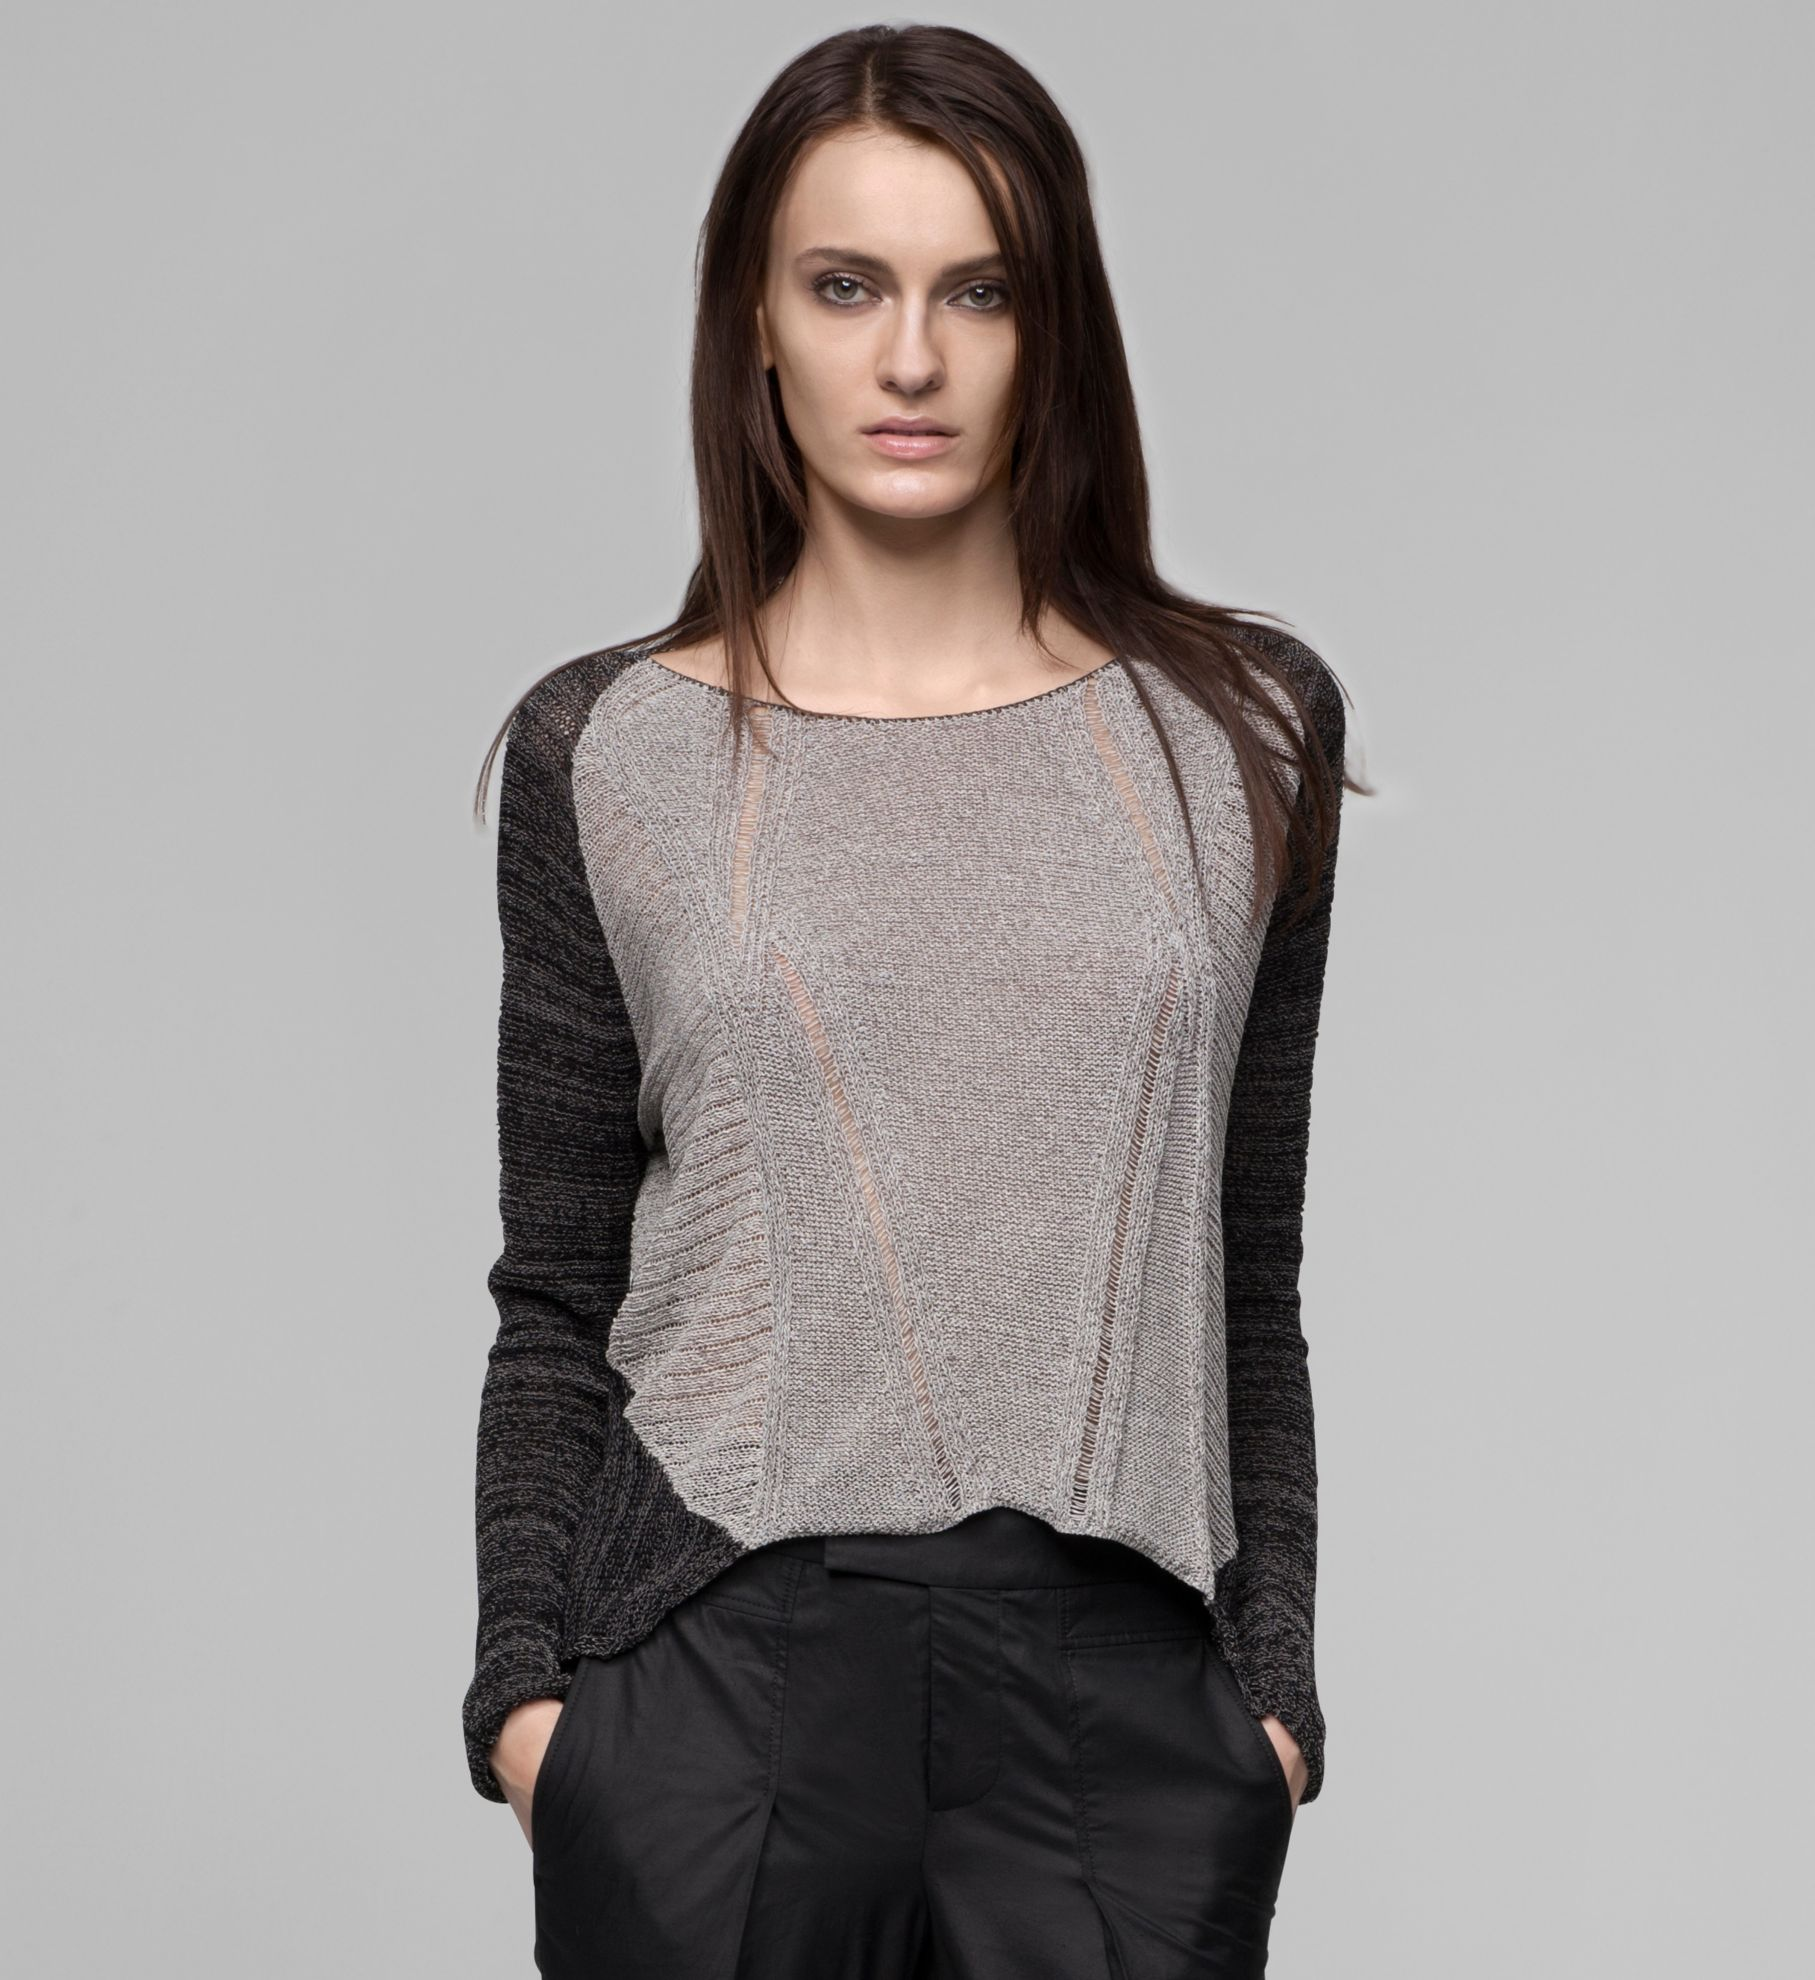 TRANSPARENT MELANGE SWEATER